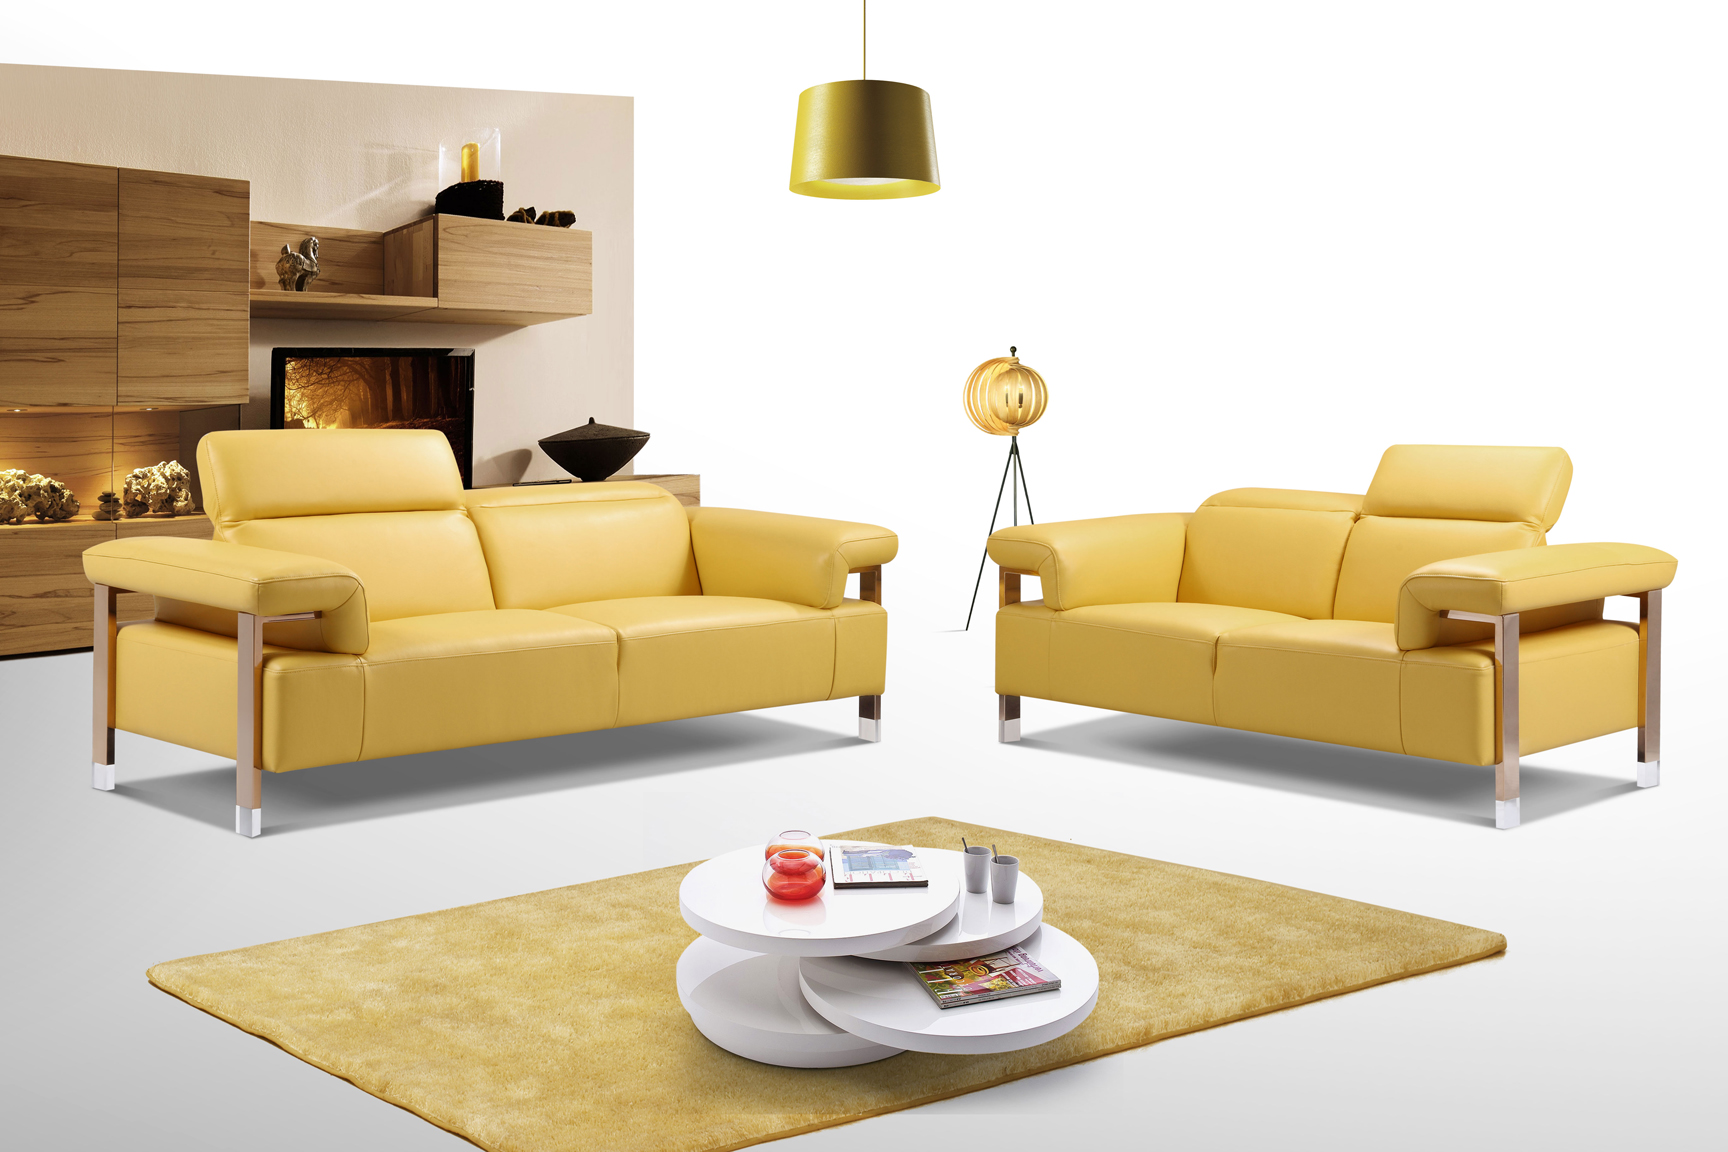 Canary yellow three piece top grain leather living room set baltimore maryland esf fd2510 Best time to buy bedroom furniture on sale